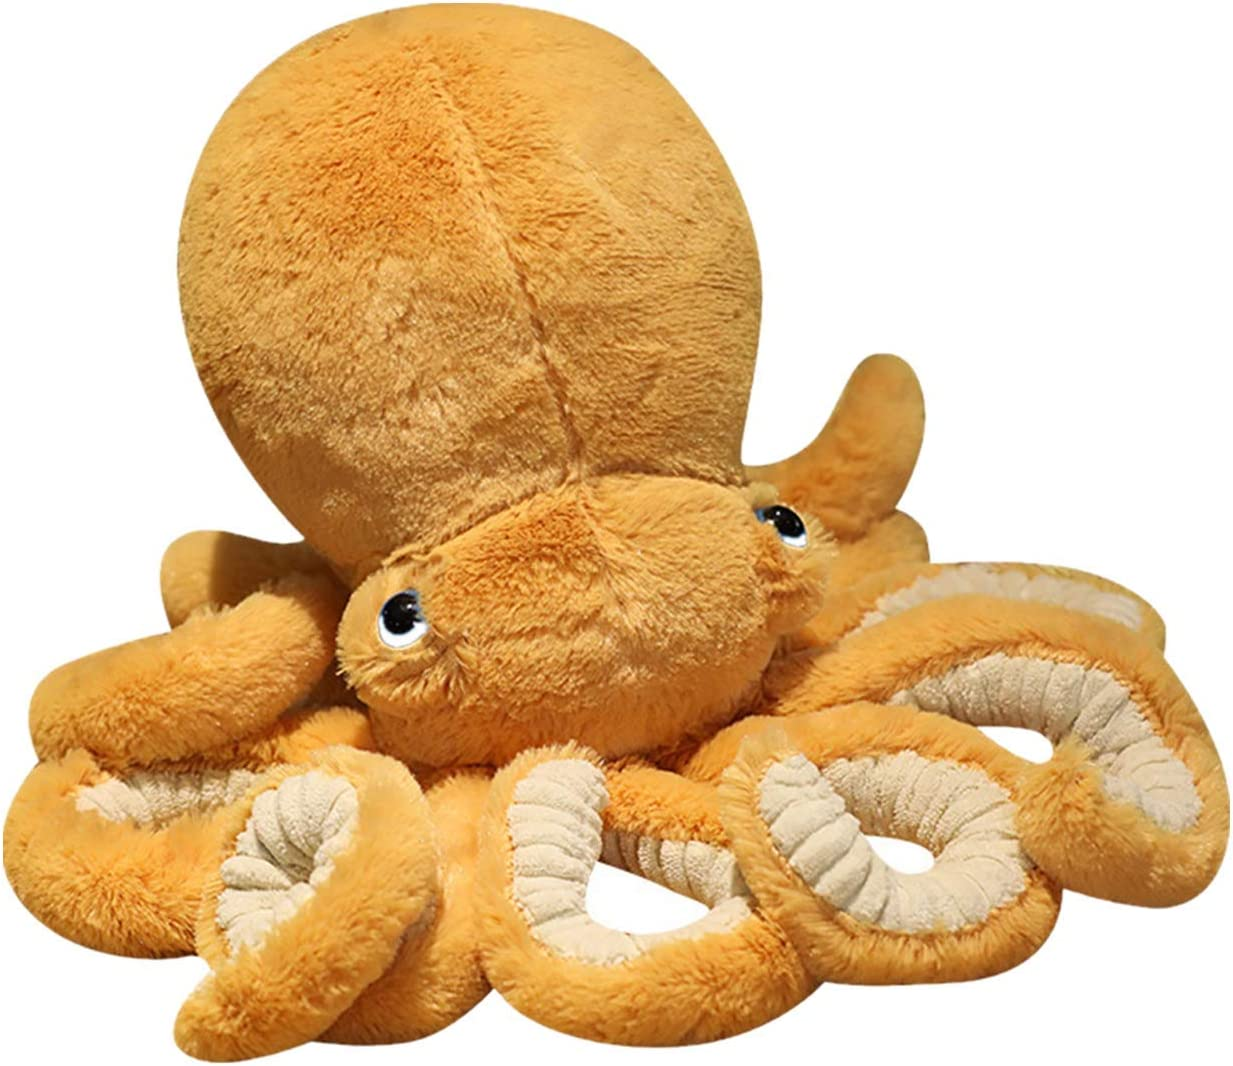 XIYUAN Stuffed Octopus Plush Toy,Octopus Stuffed Animal,Octopus Pillow,Toy Octopus, Children Pillow Plush Animal Toys ,Used for Home Decoration Gifts Yellow 12inch